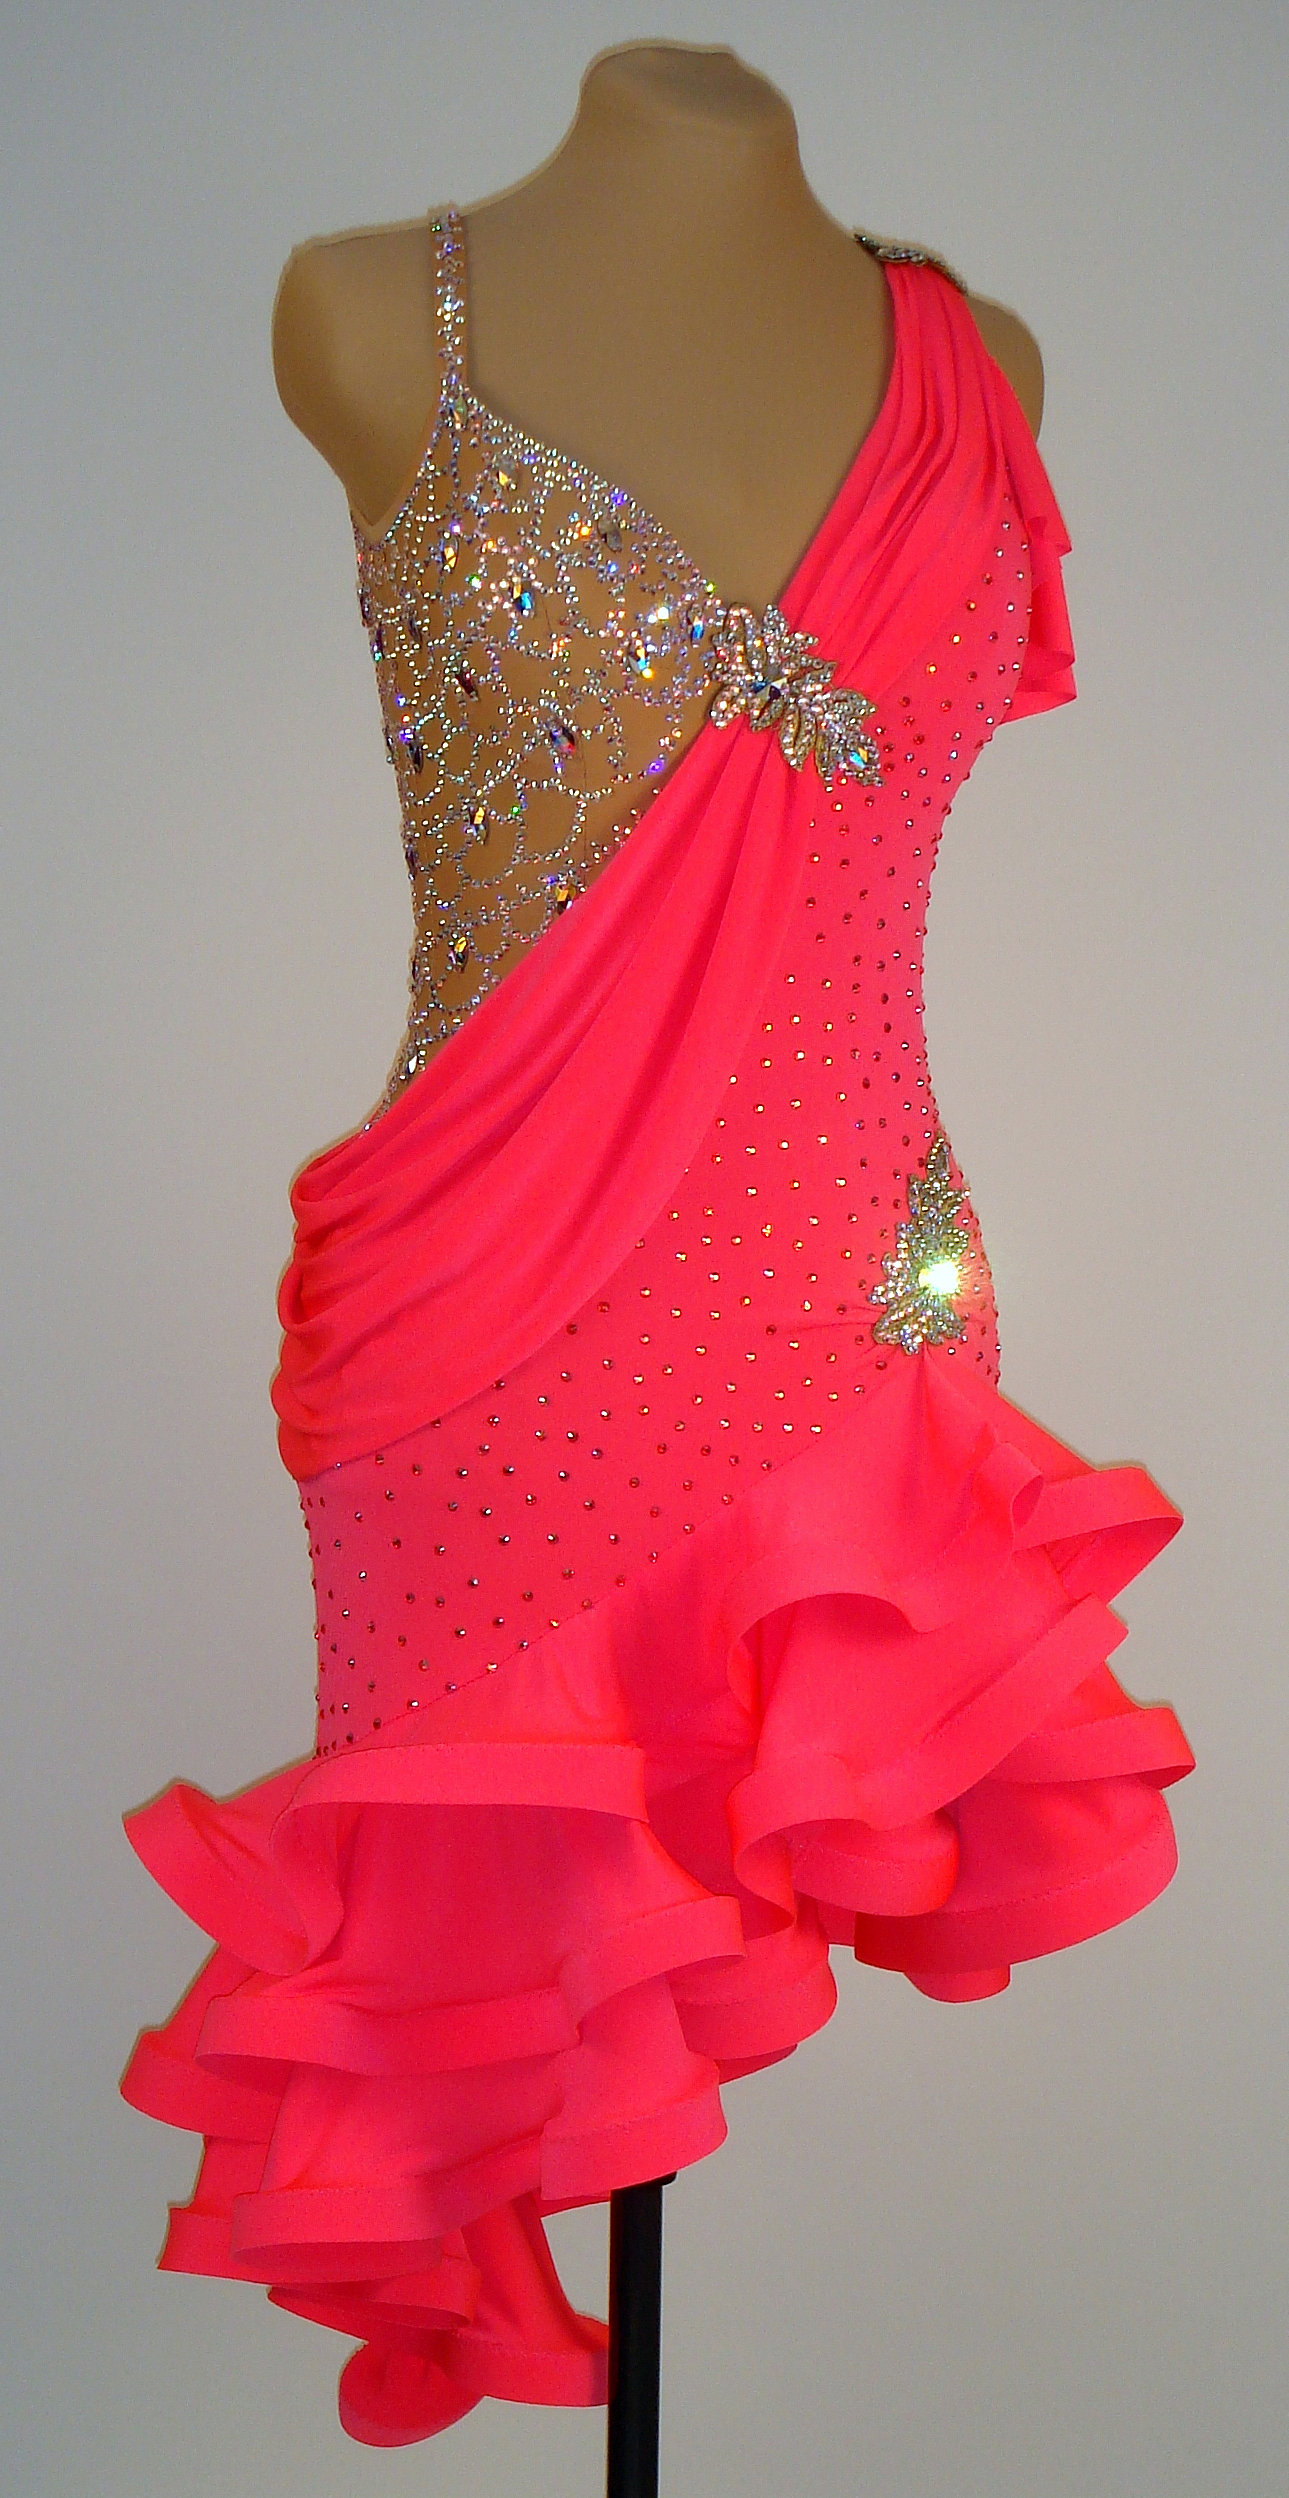 Ballroom And Latin Dresses For Sale - Hungry Pussy